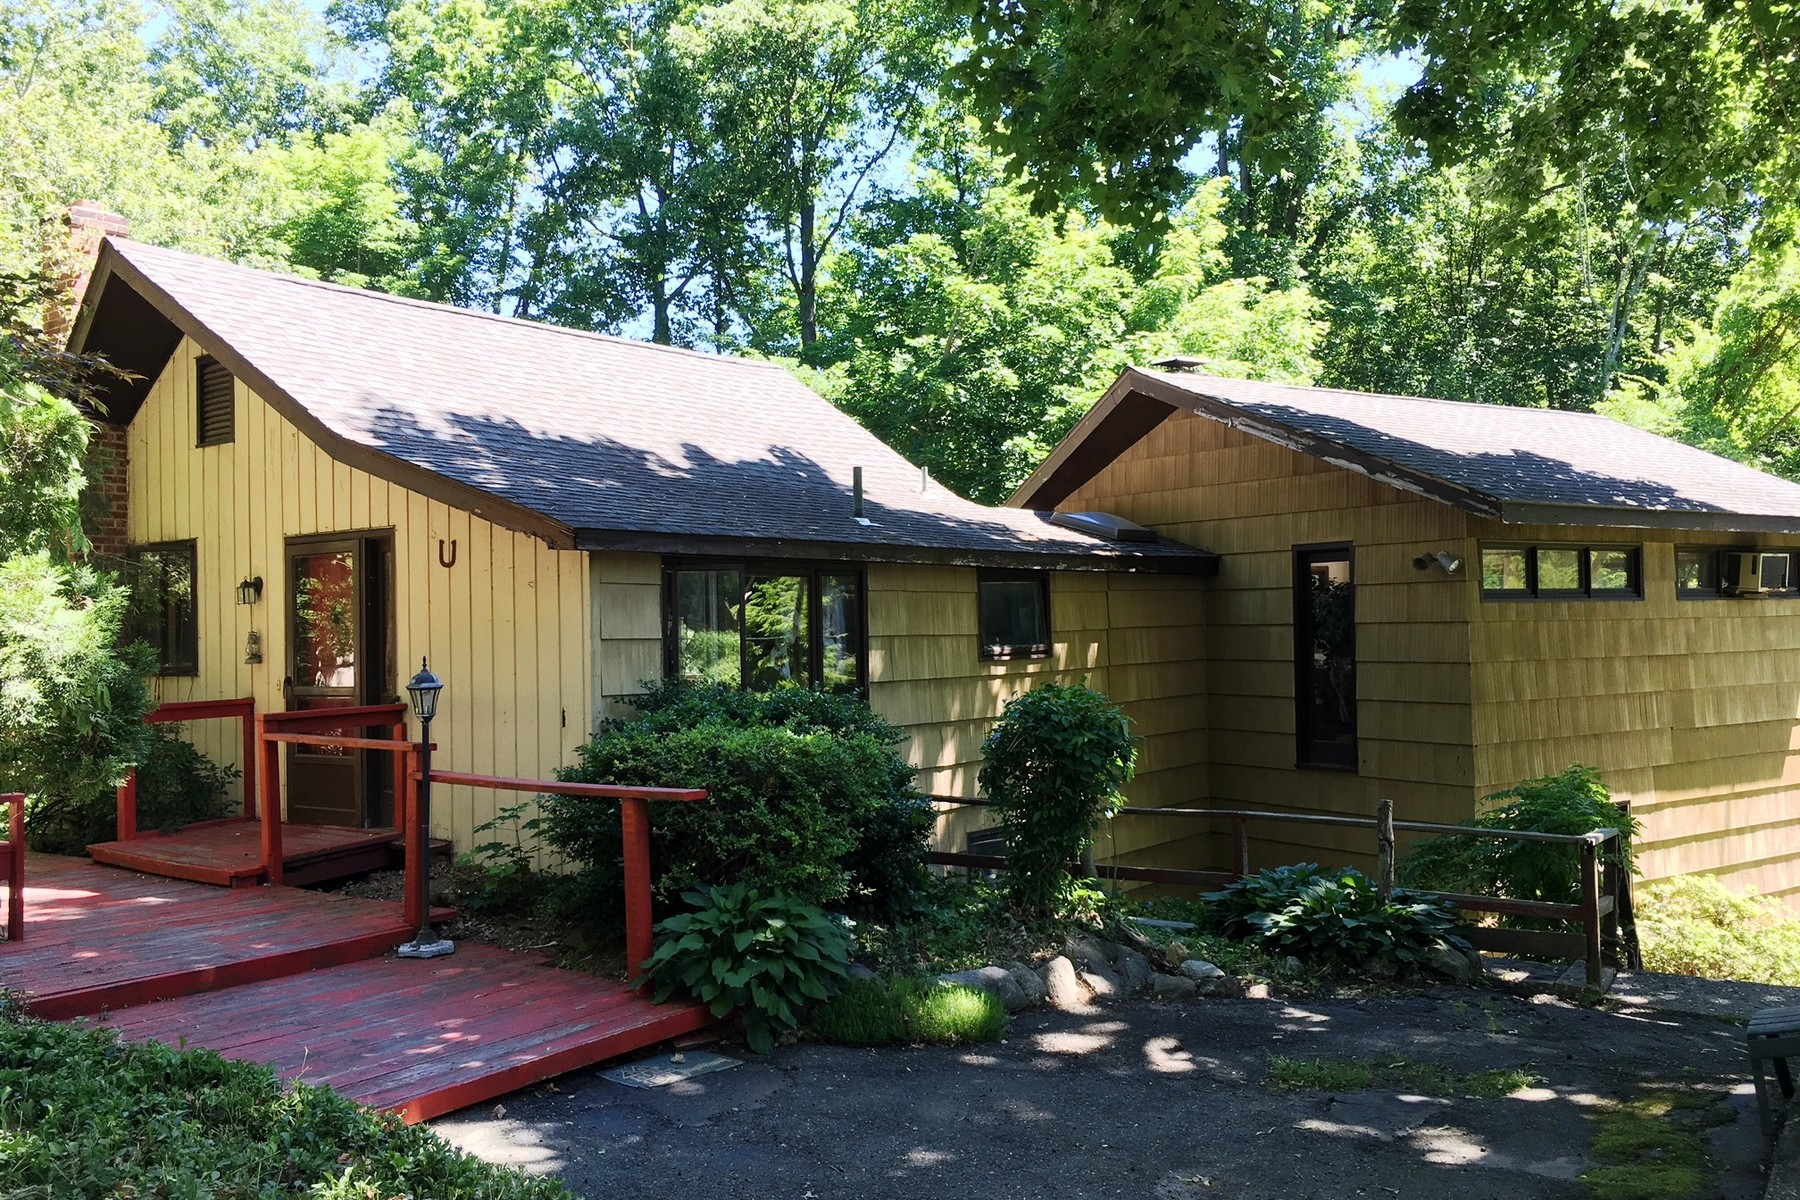 Single Family Home for Sale at Opportunity Awaits 218 Hurlbutt Street Wilton, Connecticut, 06897 United States